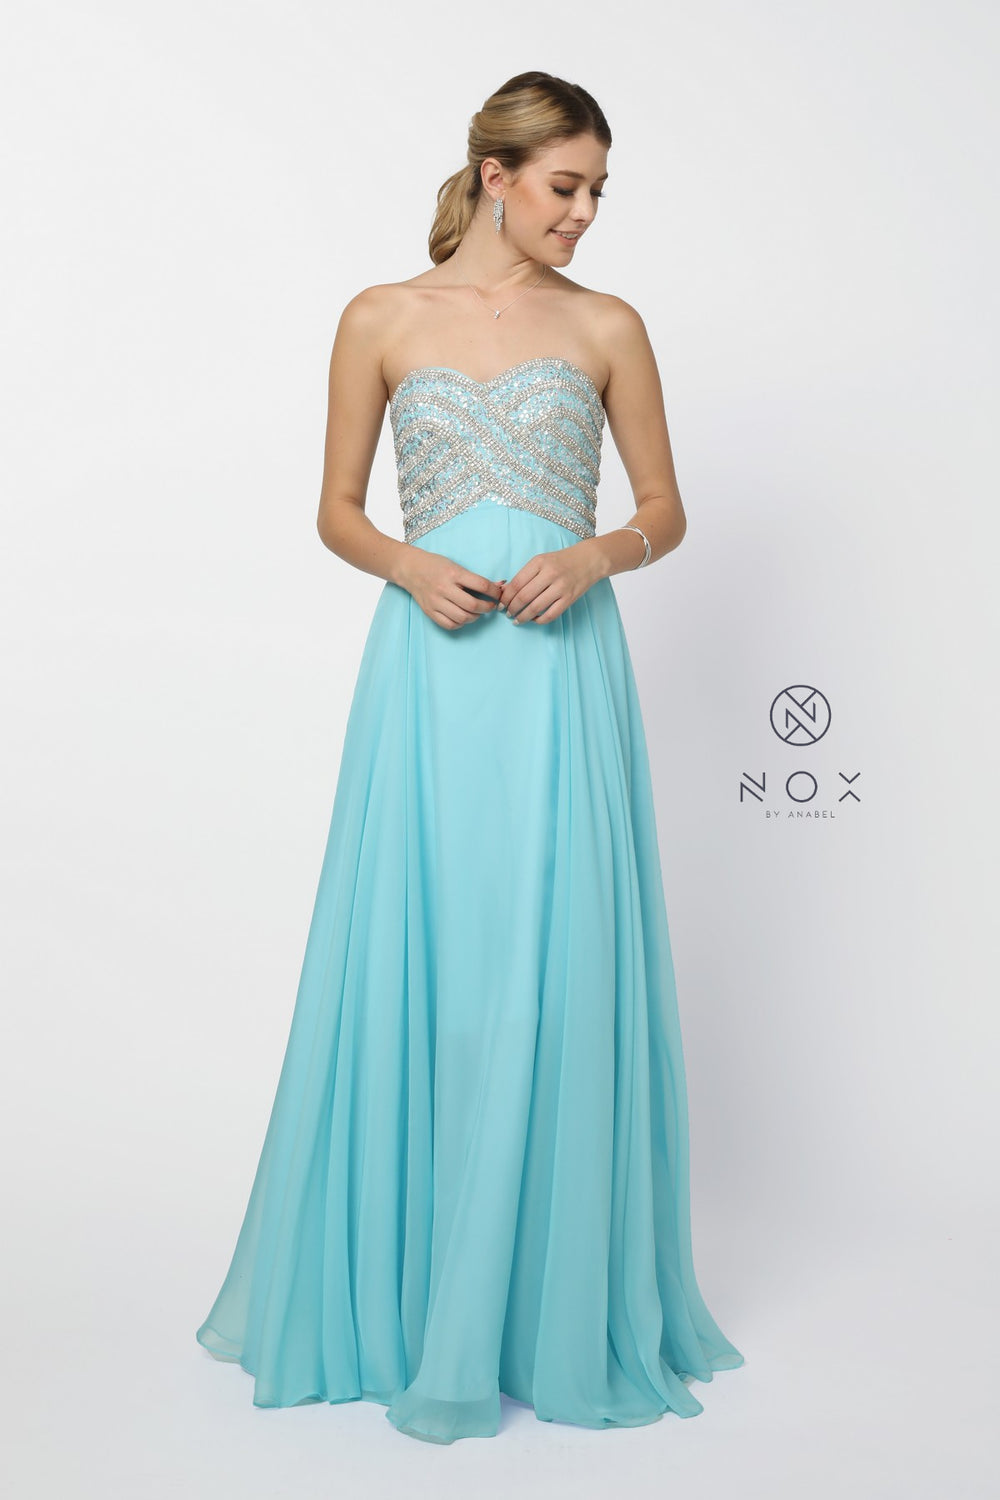 STRAPLESS LONG CHIFFON A-LINE STYLE 8147 BY NARIANNA